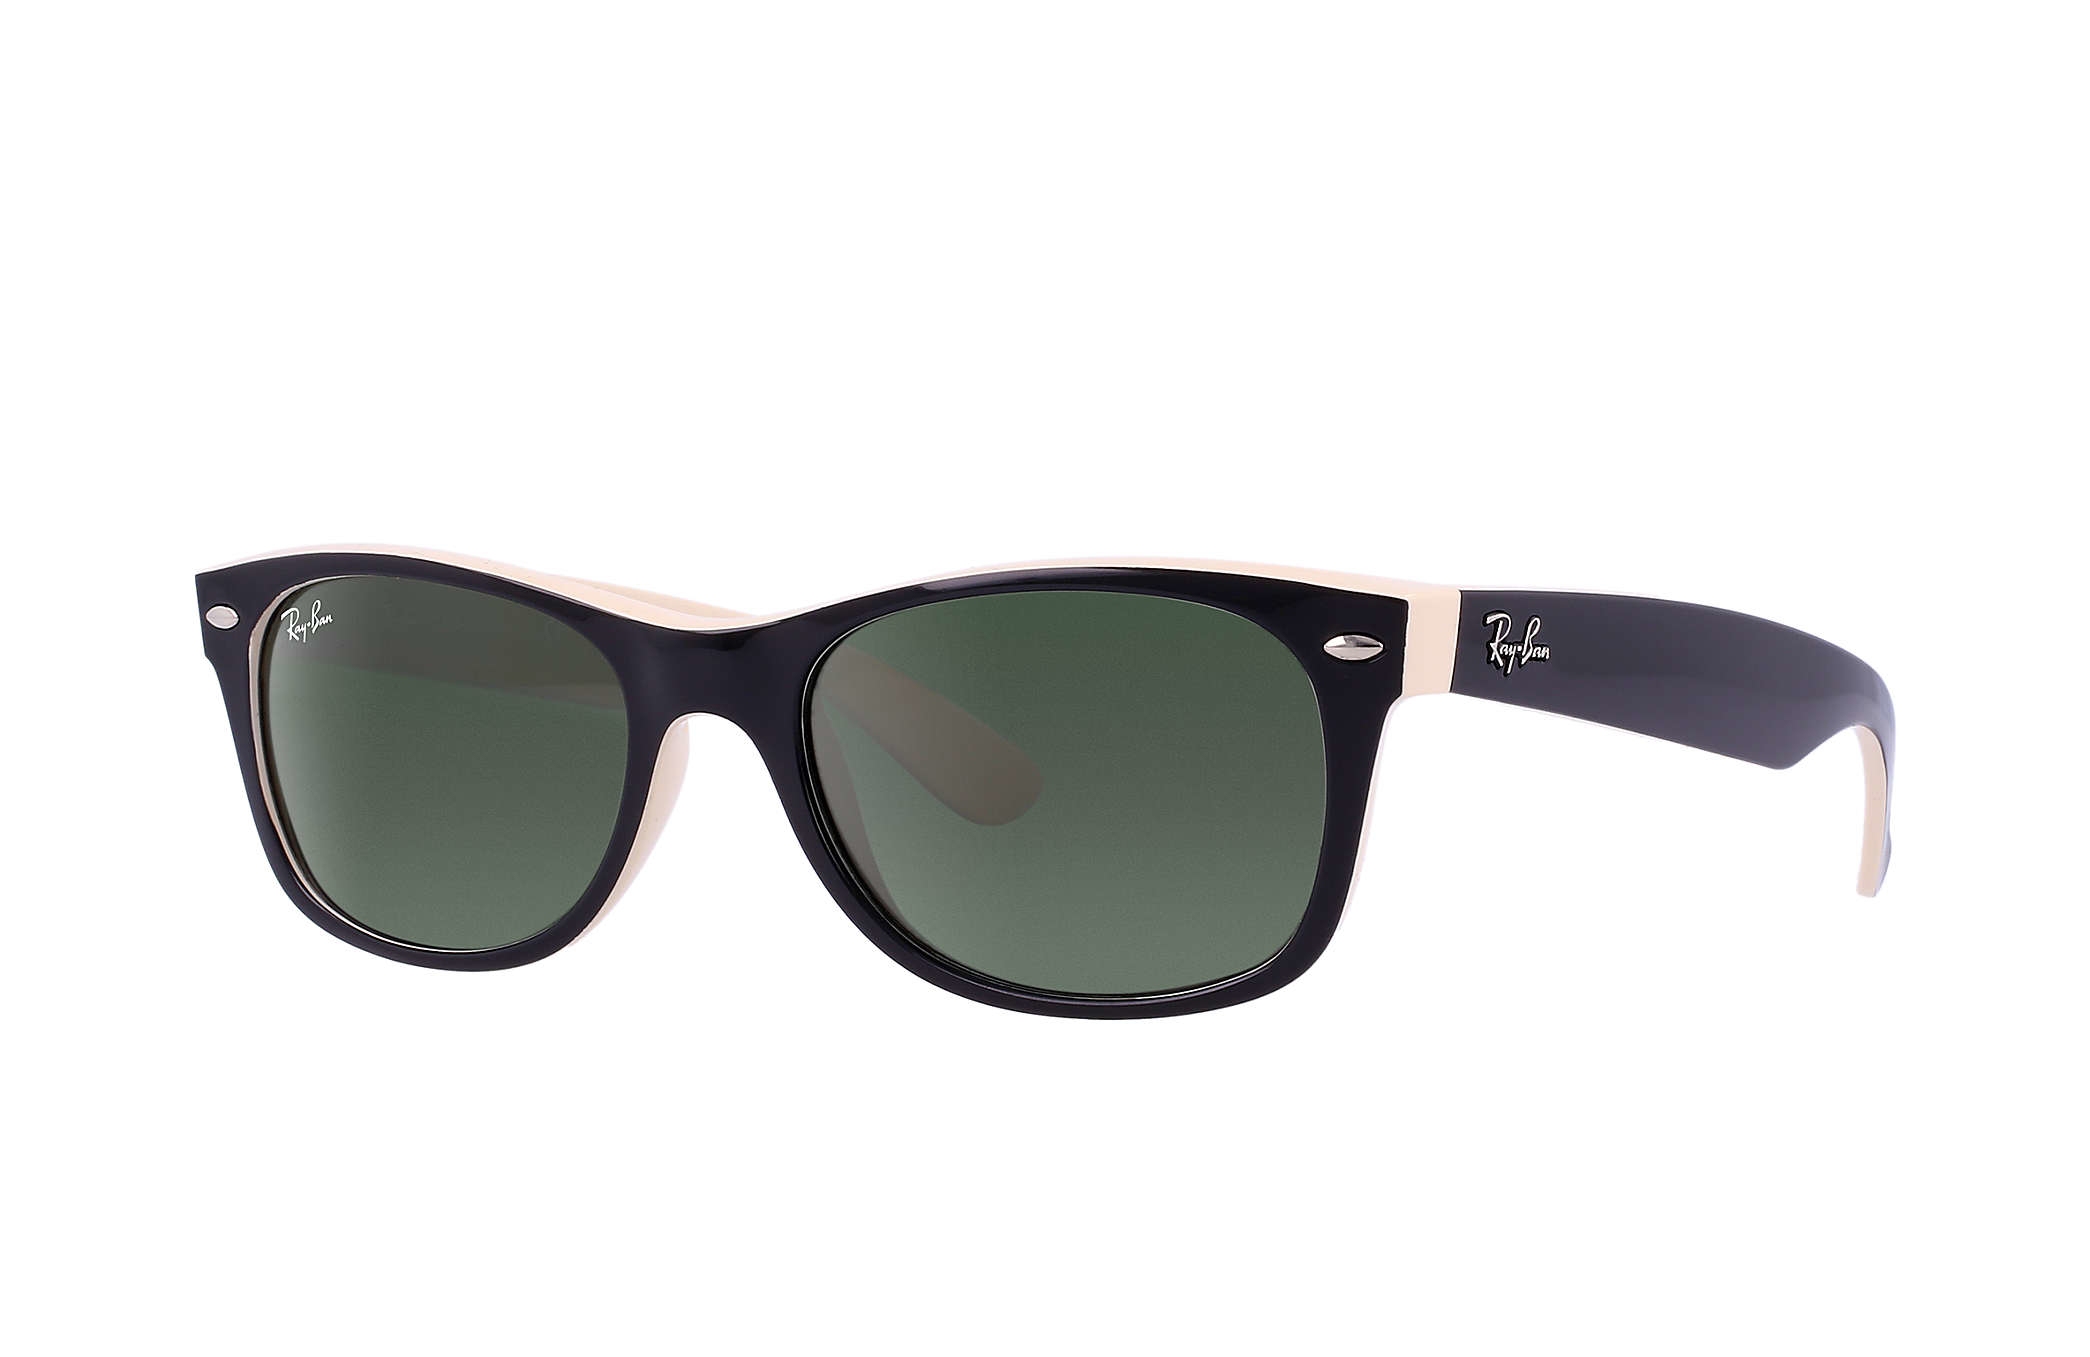 Ray-ban New Wayfarer Colour Mix